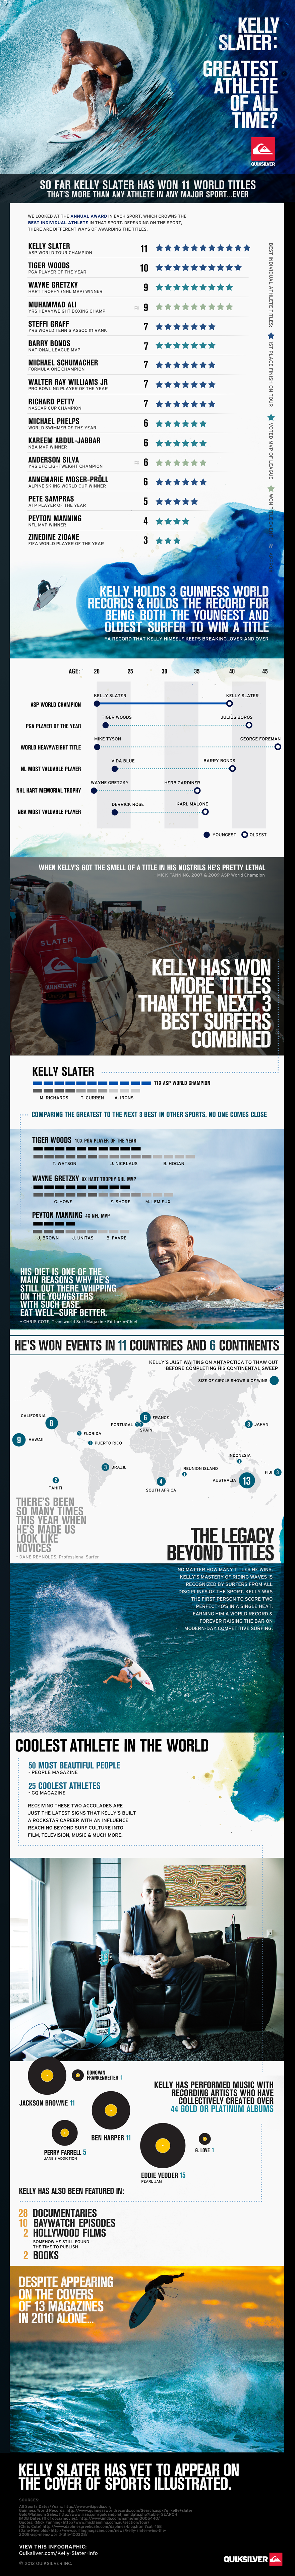 Quiksilver - Kelly Slater Infographic 